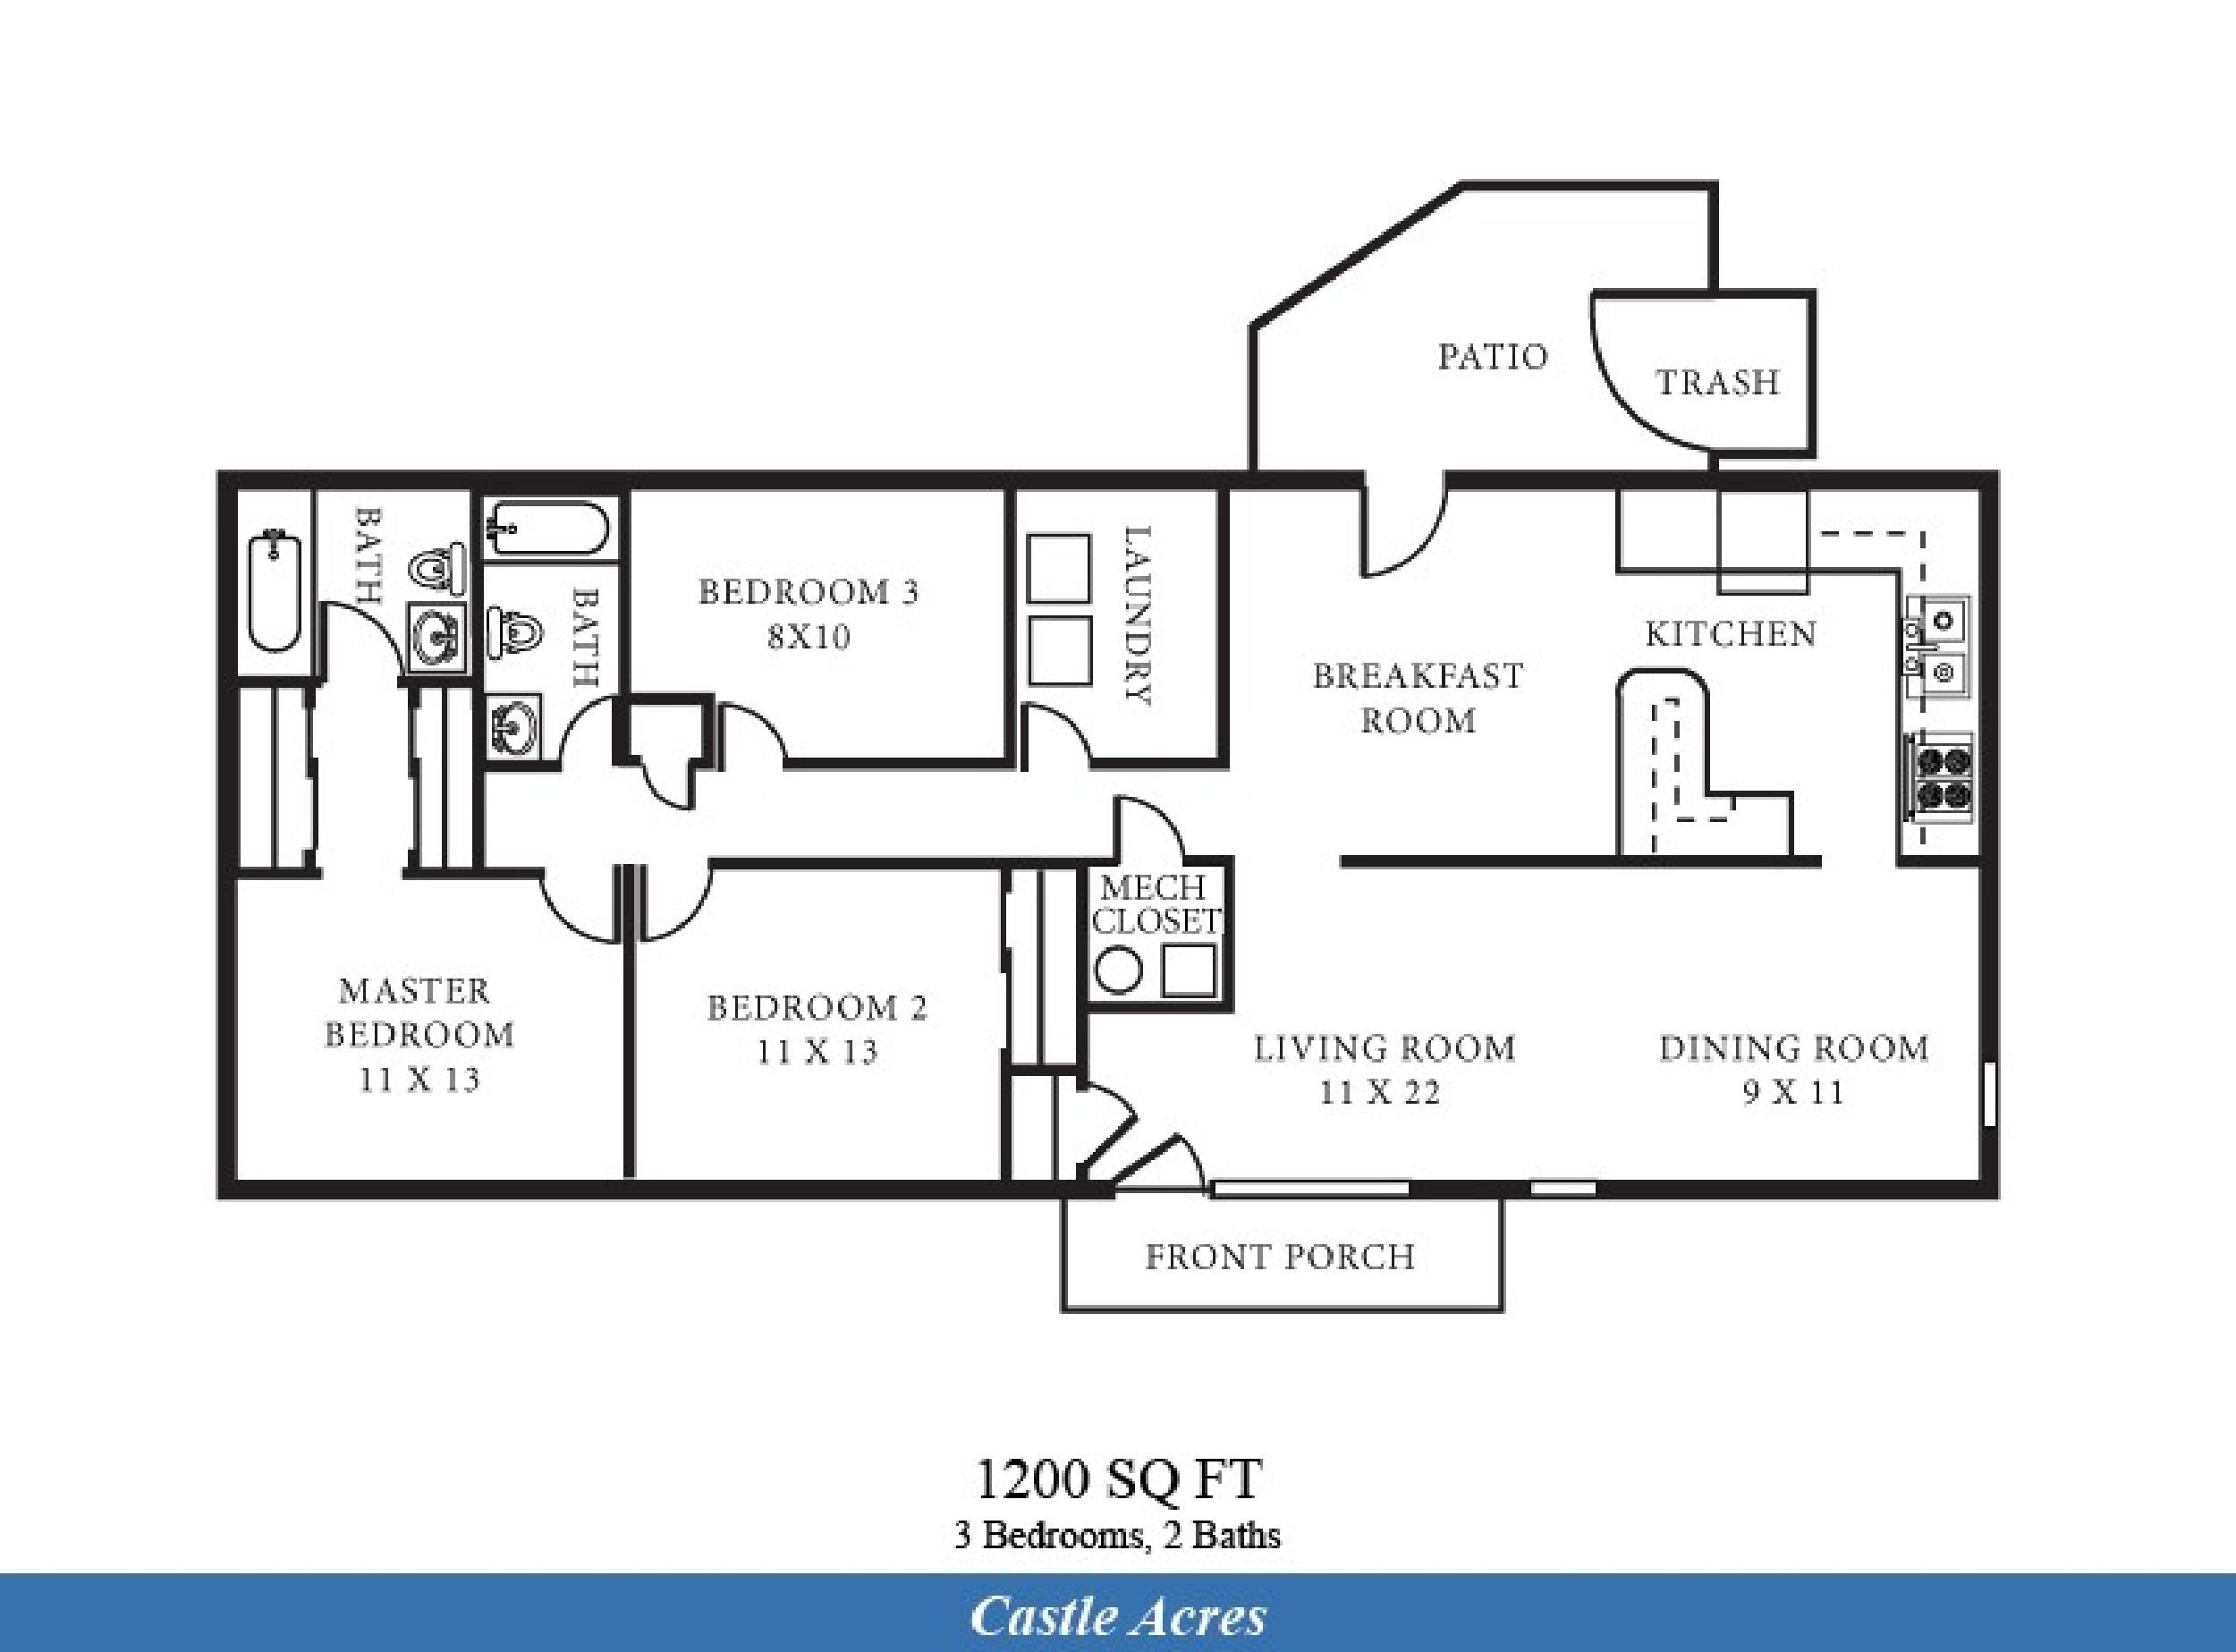 Jacobsen Manufactured Homes Floor Plans 2 Bedroom Bath House Plans Under 1200 Sq Ft